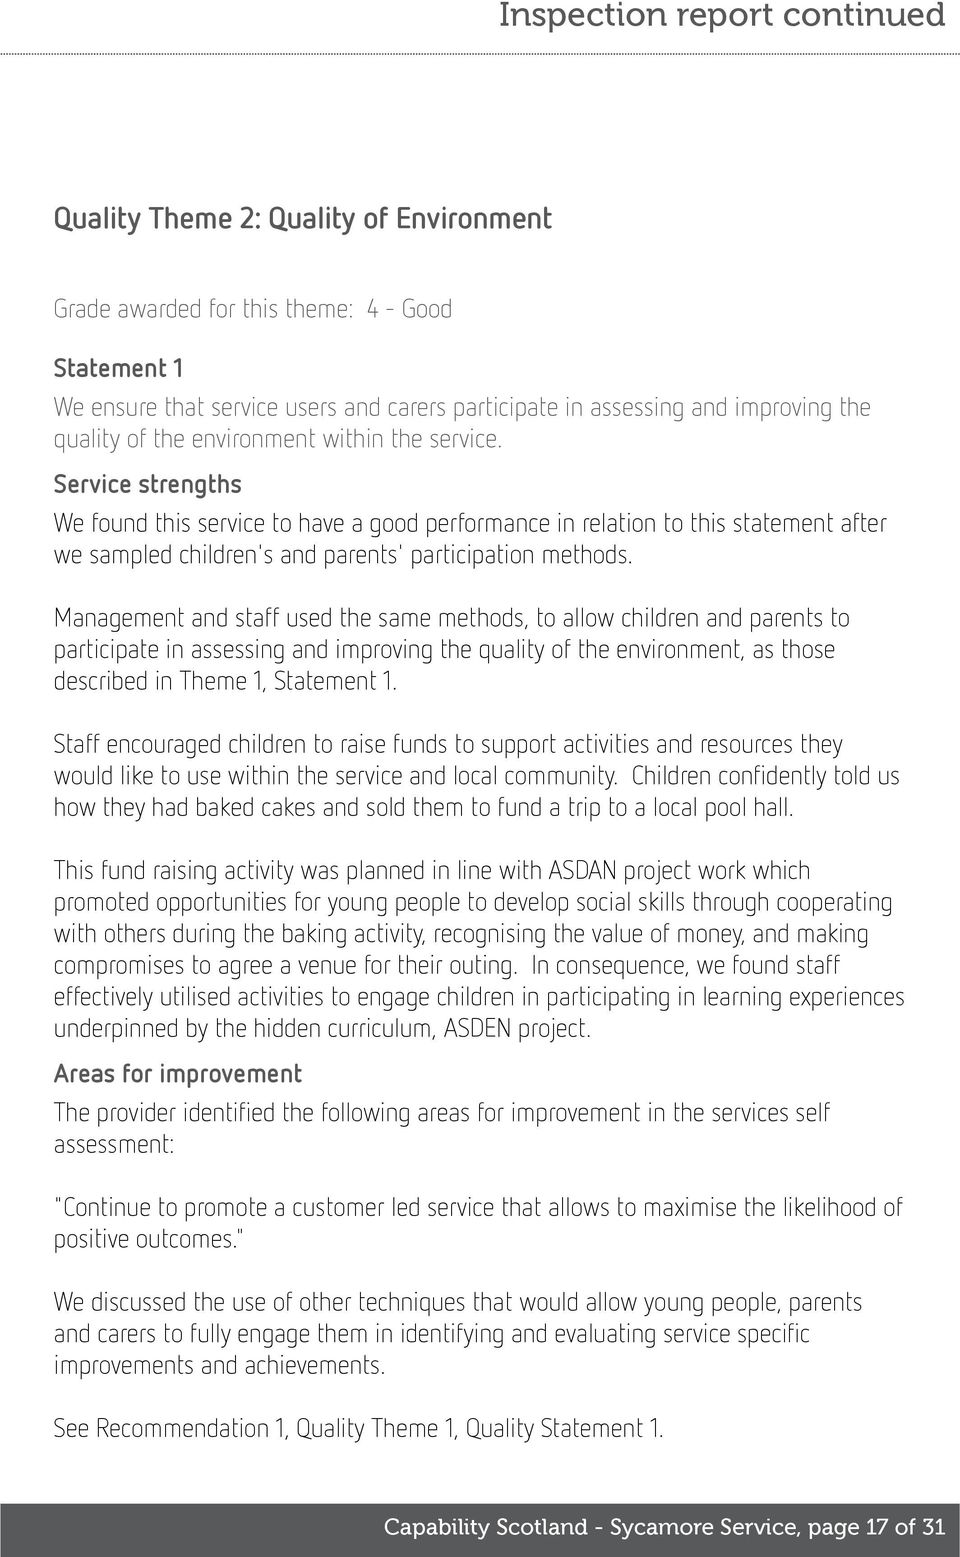 Management and staff used the same methods, to allow children and parents to participate in assessing and improving the quality of the environment, as those described in Theme 1, Statement 1.